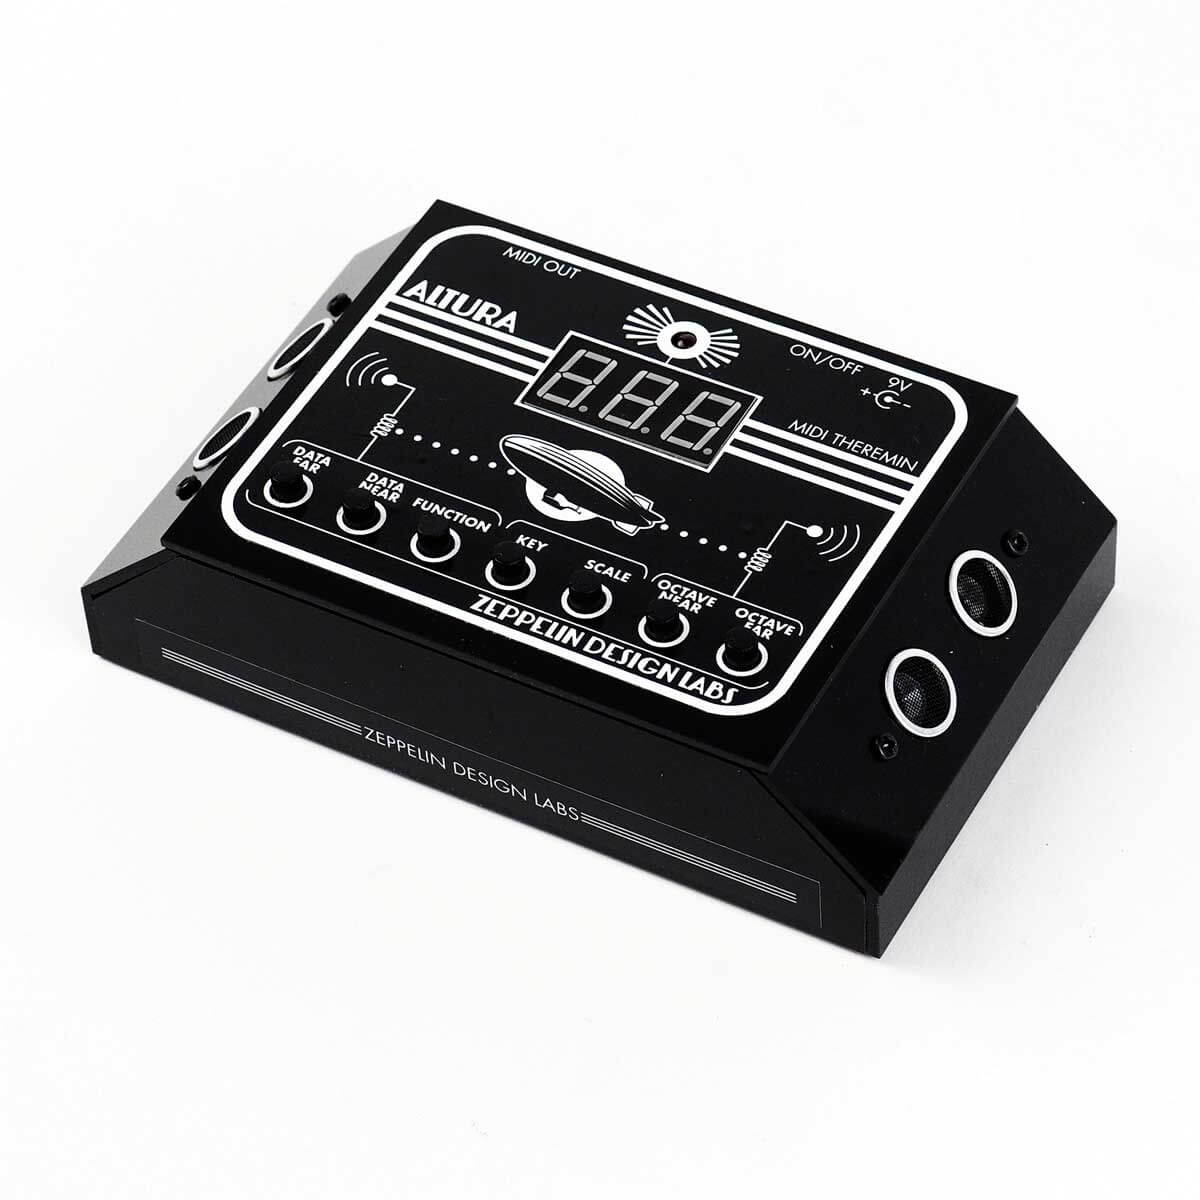 Img besides Dart Mobox Ex le Aluminum as well Maxresdefault as well Gmd Tube Screamer Pedal Clone Variant A further Midi Foot Controller. on arduino midi controller diy